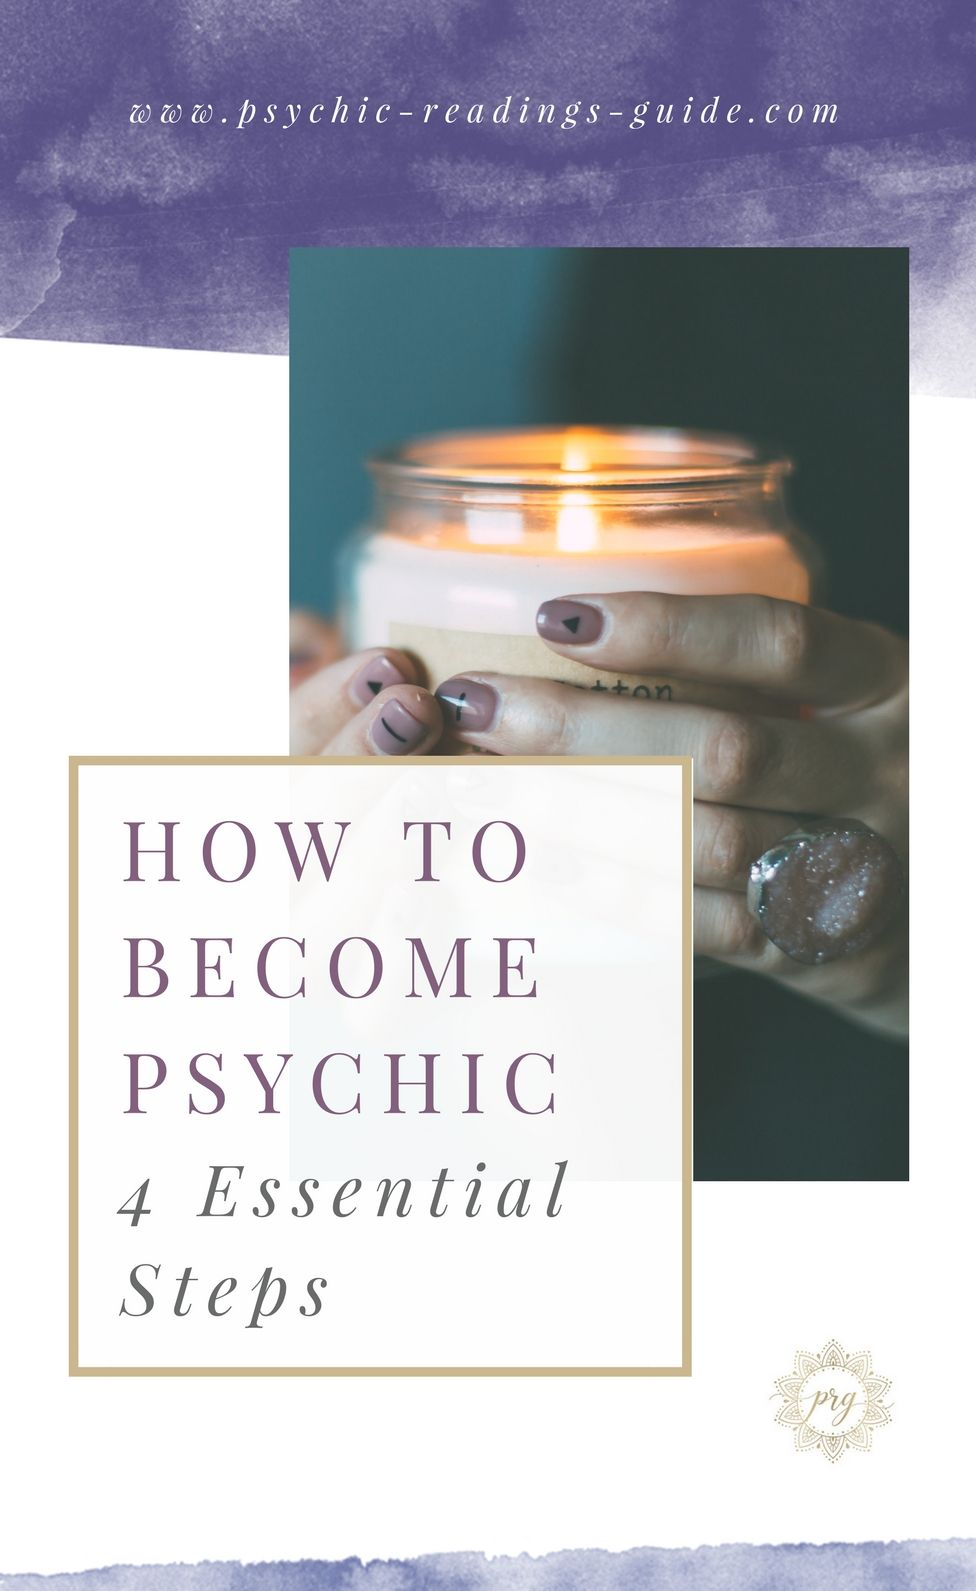 How To Become Psychic 4 Essential Steps Psychic Psychic Development Psychic Mediums